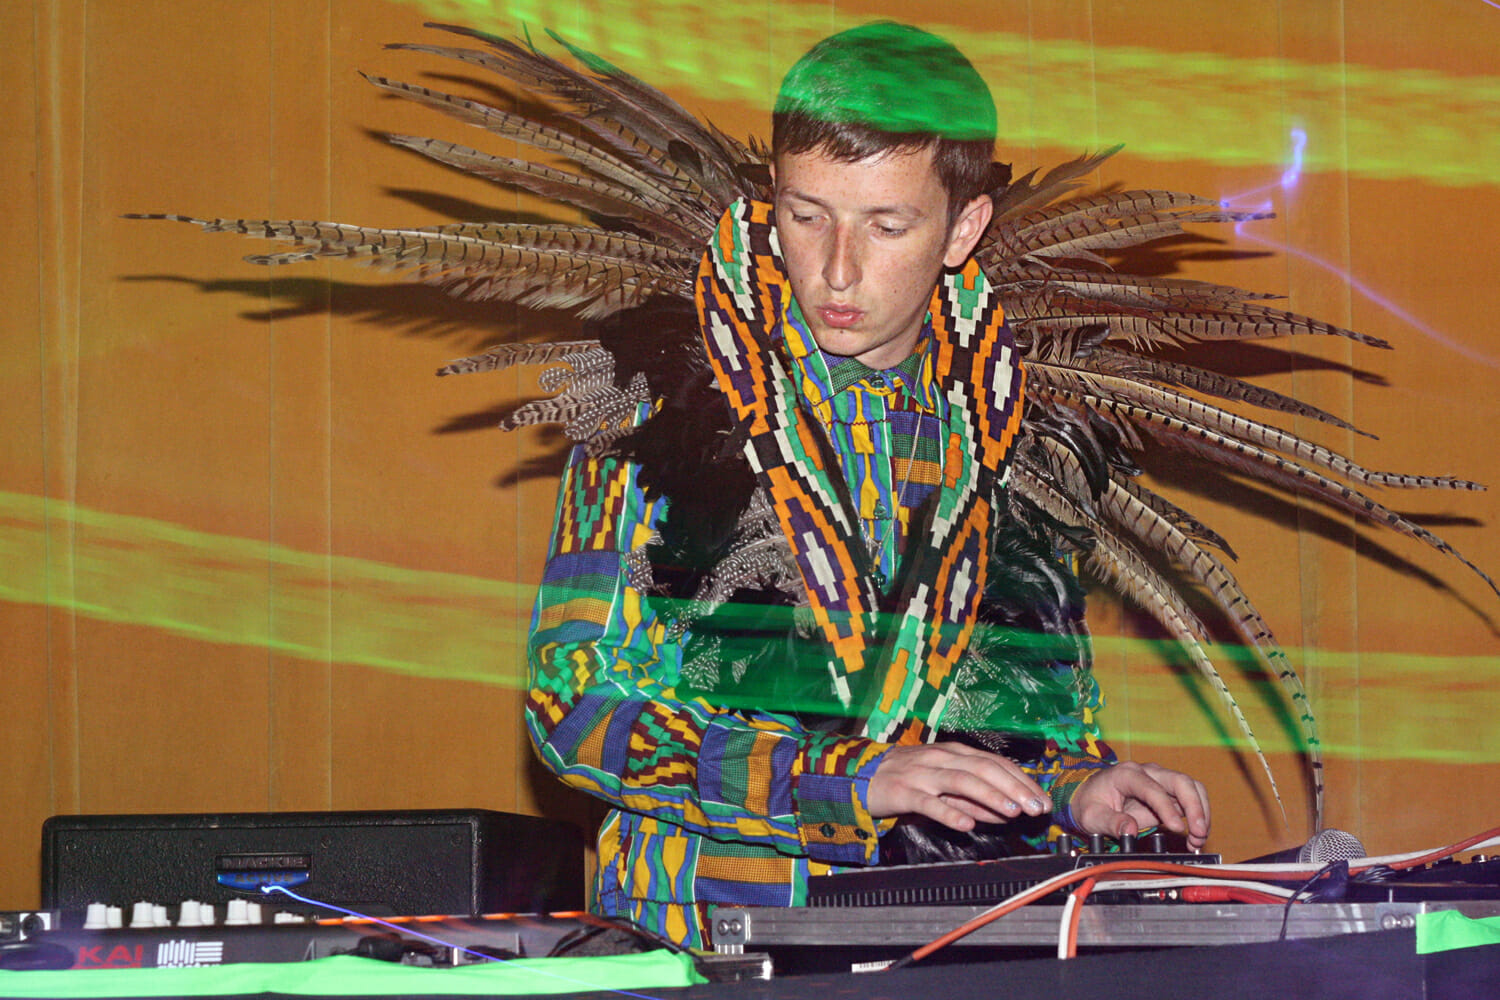 Good Morning Mix: Totally Enormous Extinct Dinosaurs brings deep grooves to Seattle's KEXPT E E D